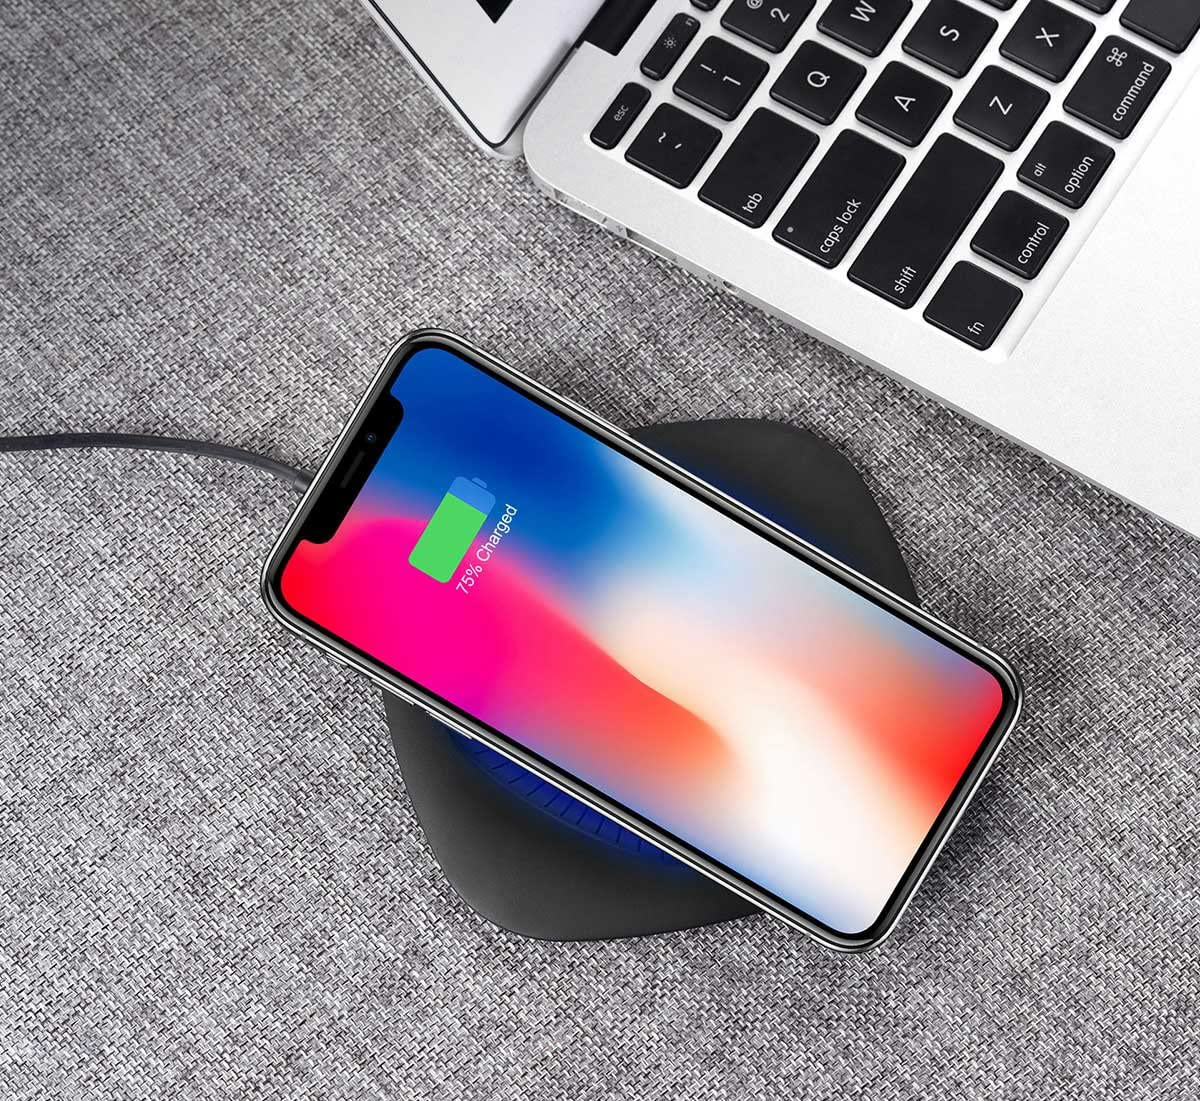 NO AC Adapter IPhone Wireless Charger 7.5W【Ultra-Slim】Fast-Charging pad station for iPhone X,iPhone 8//8 Plus,10W Qi-Certified Fast Charger for Samsung S7//S8//S8+//S9 Galaxy S7//S7 Edge//Note 8